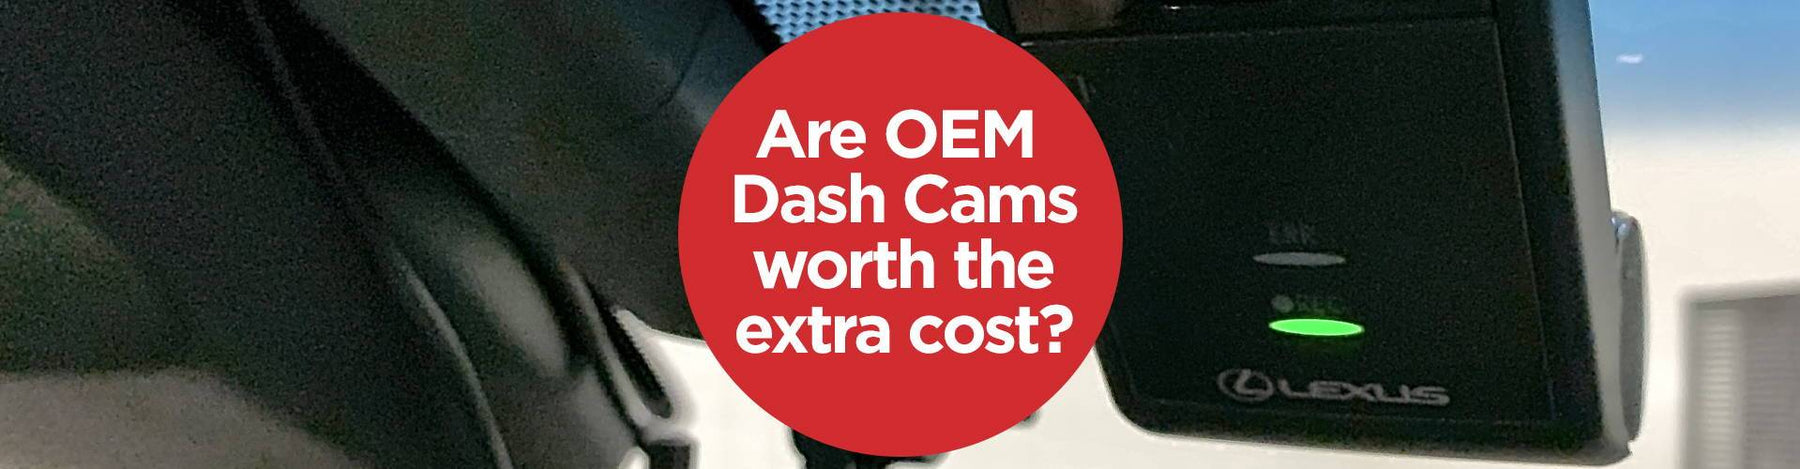 Are OEM Dash Cams Worth the Extra Cost?